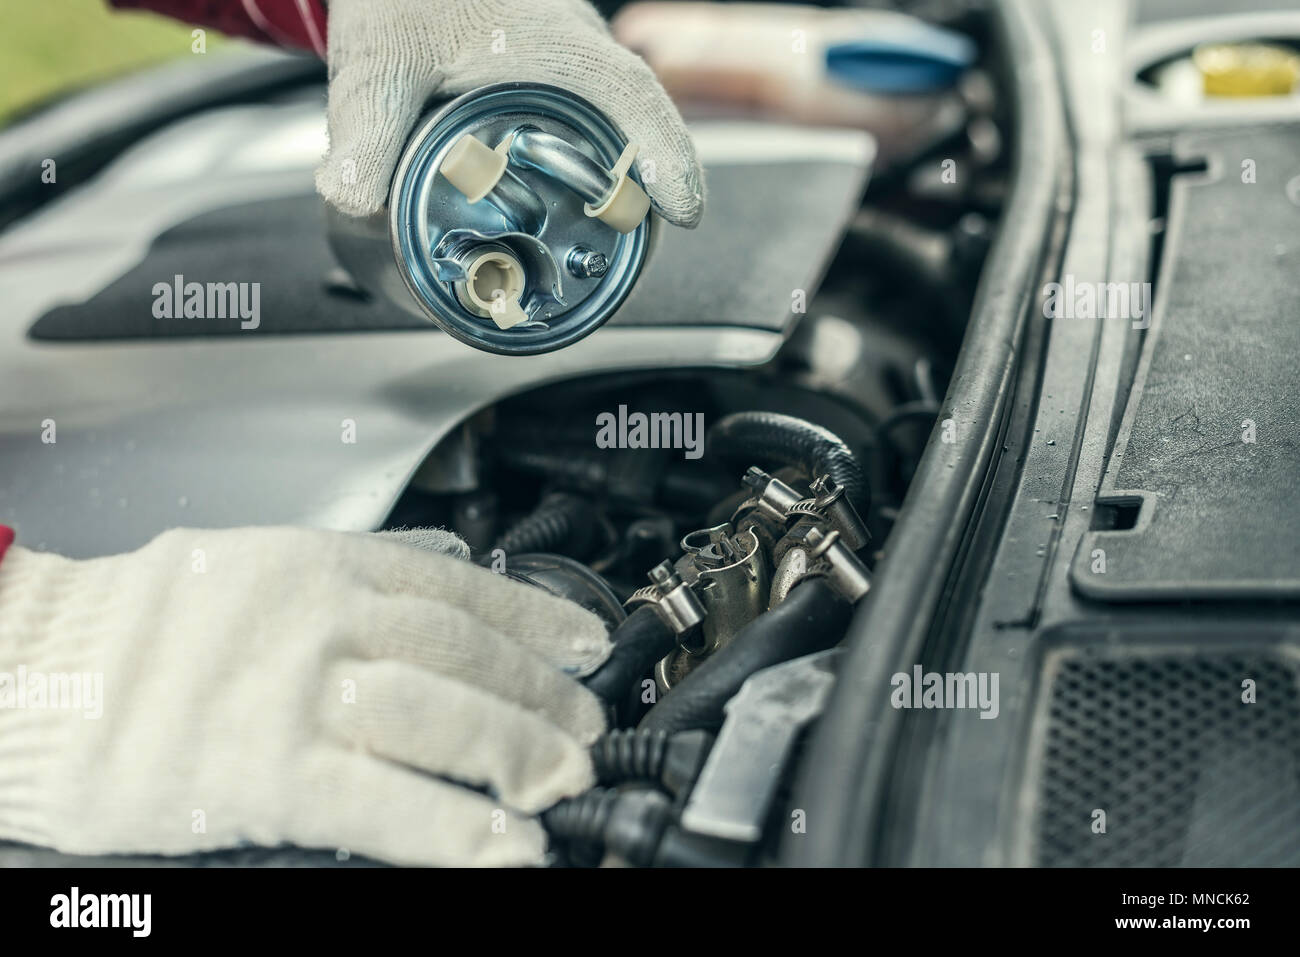 Fuel Filter Dirty Car Stock Photos Vehicle An Auto Mechanic Replaces A Cars Image